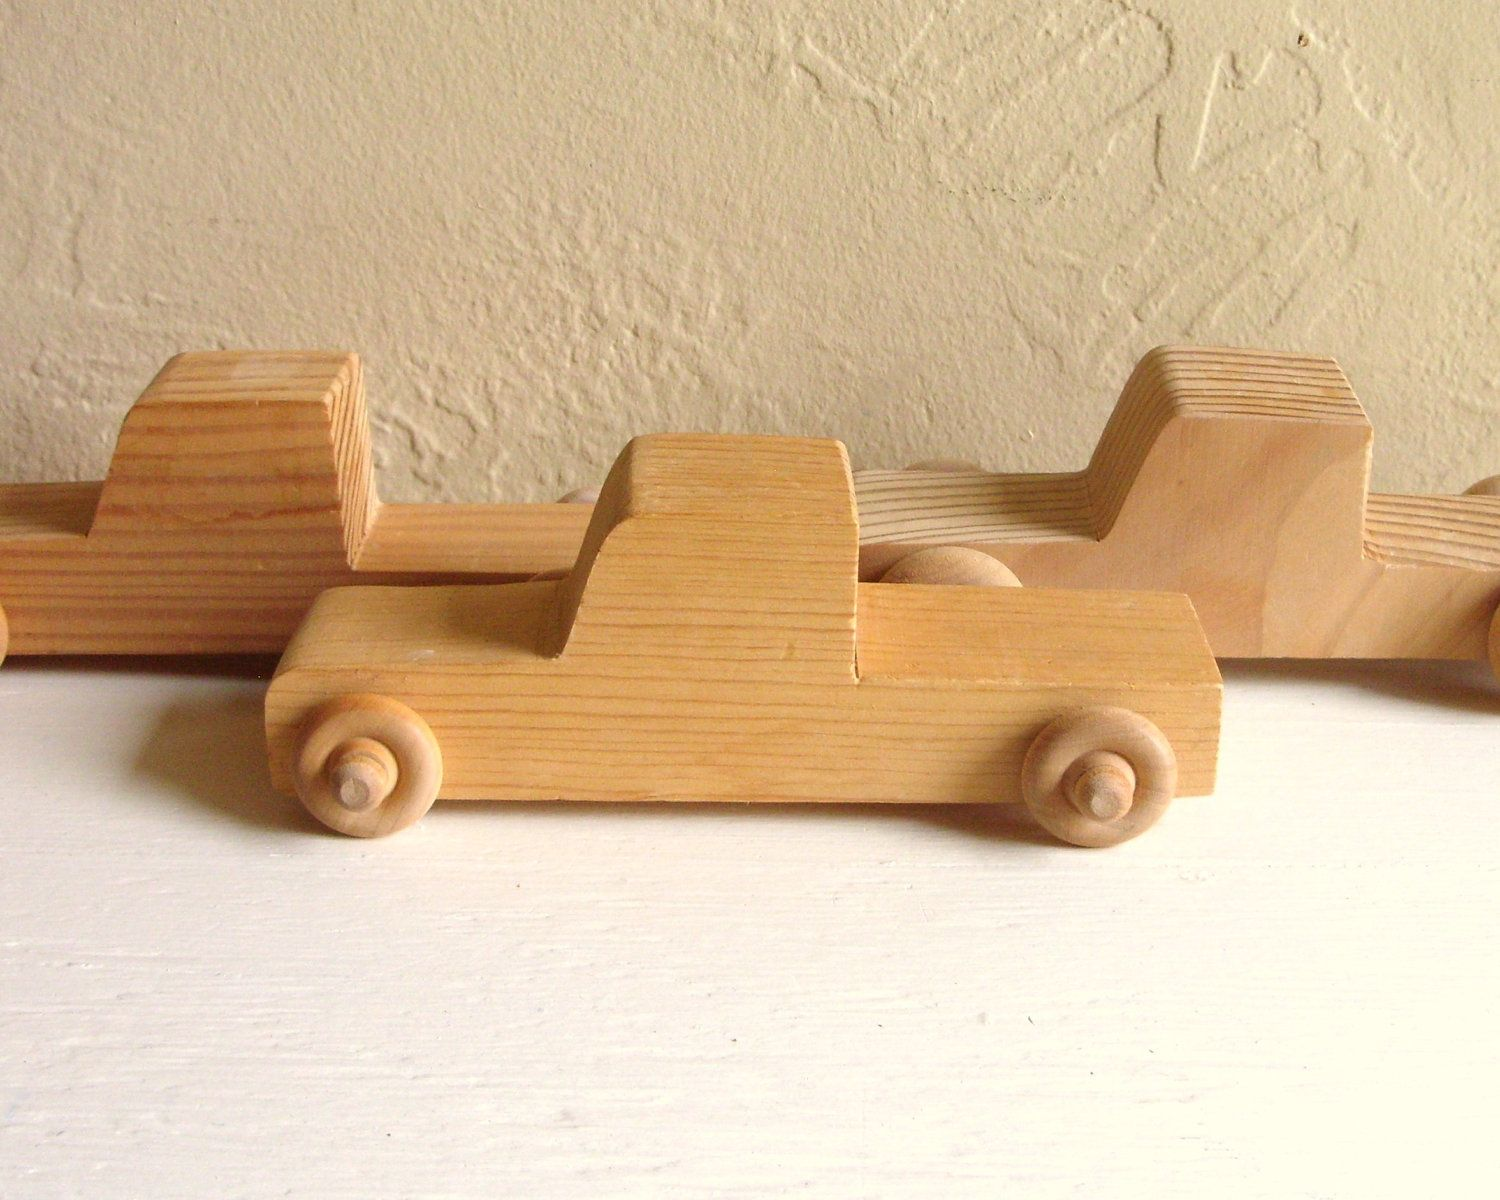 Unfinished Wood Trucks Wooden Toy Pick-up Cars - Ready to Paint or ...